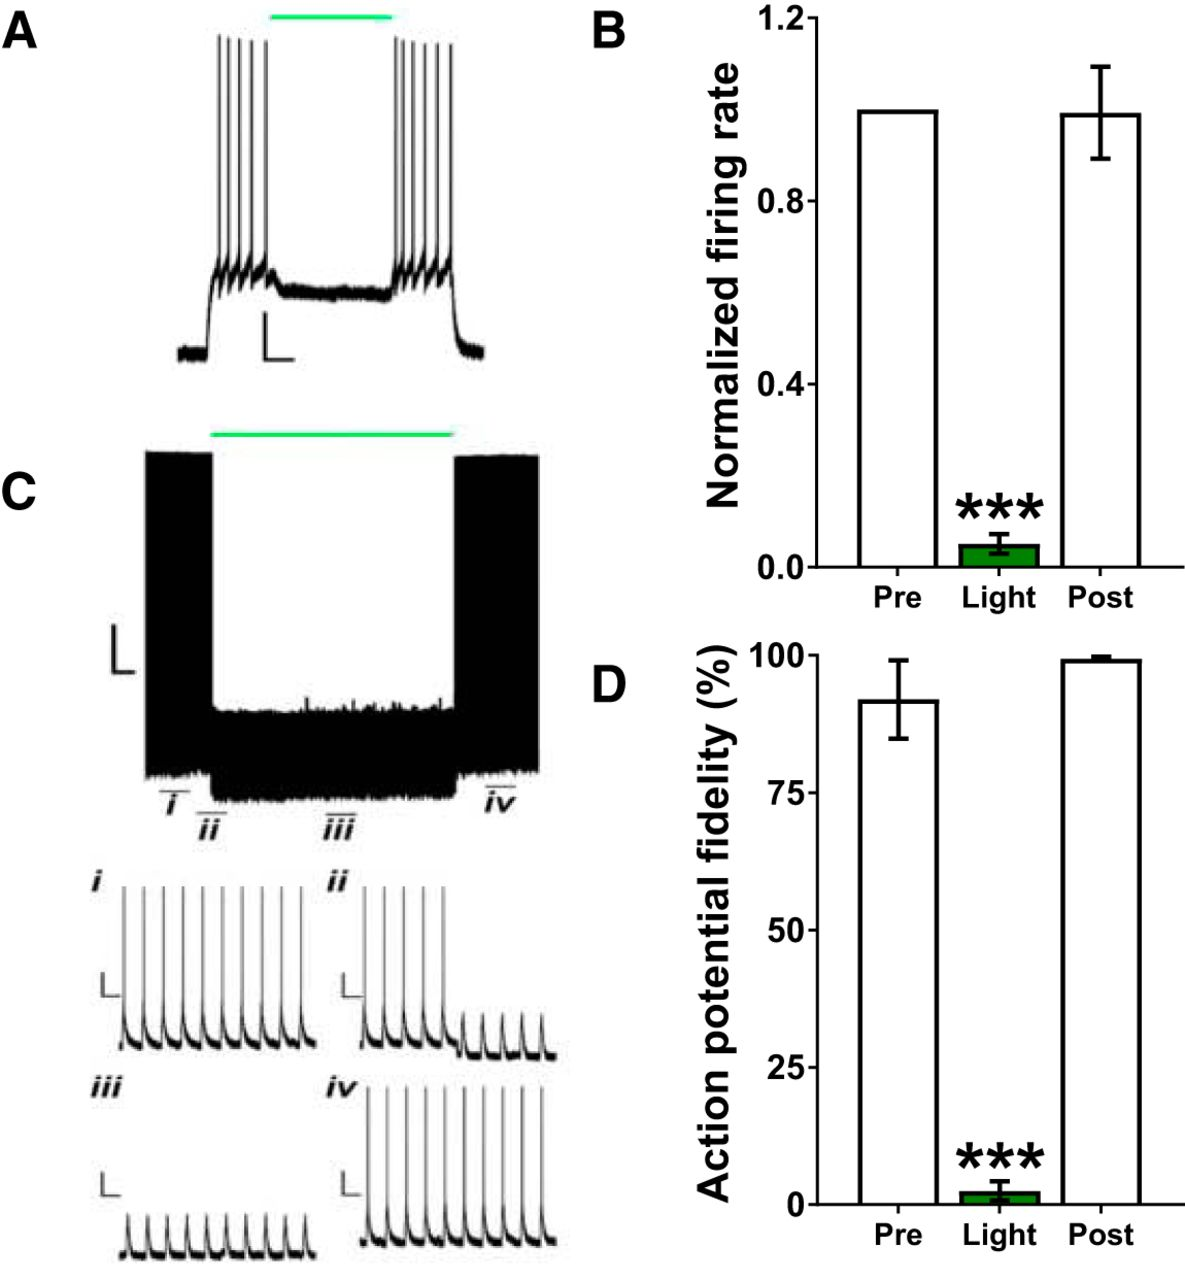 Postmeal Optogenetic Inhibition of Dorsal or Ventral